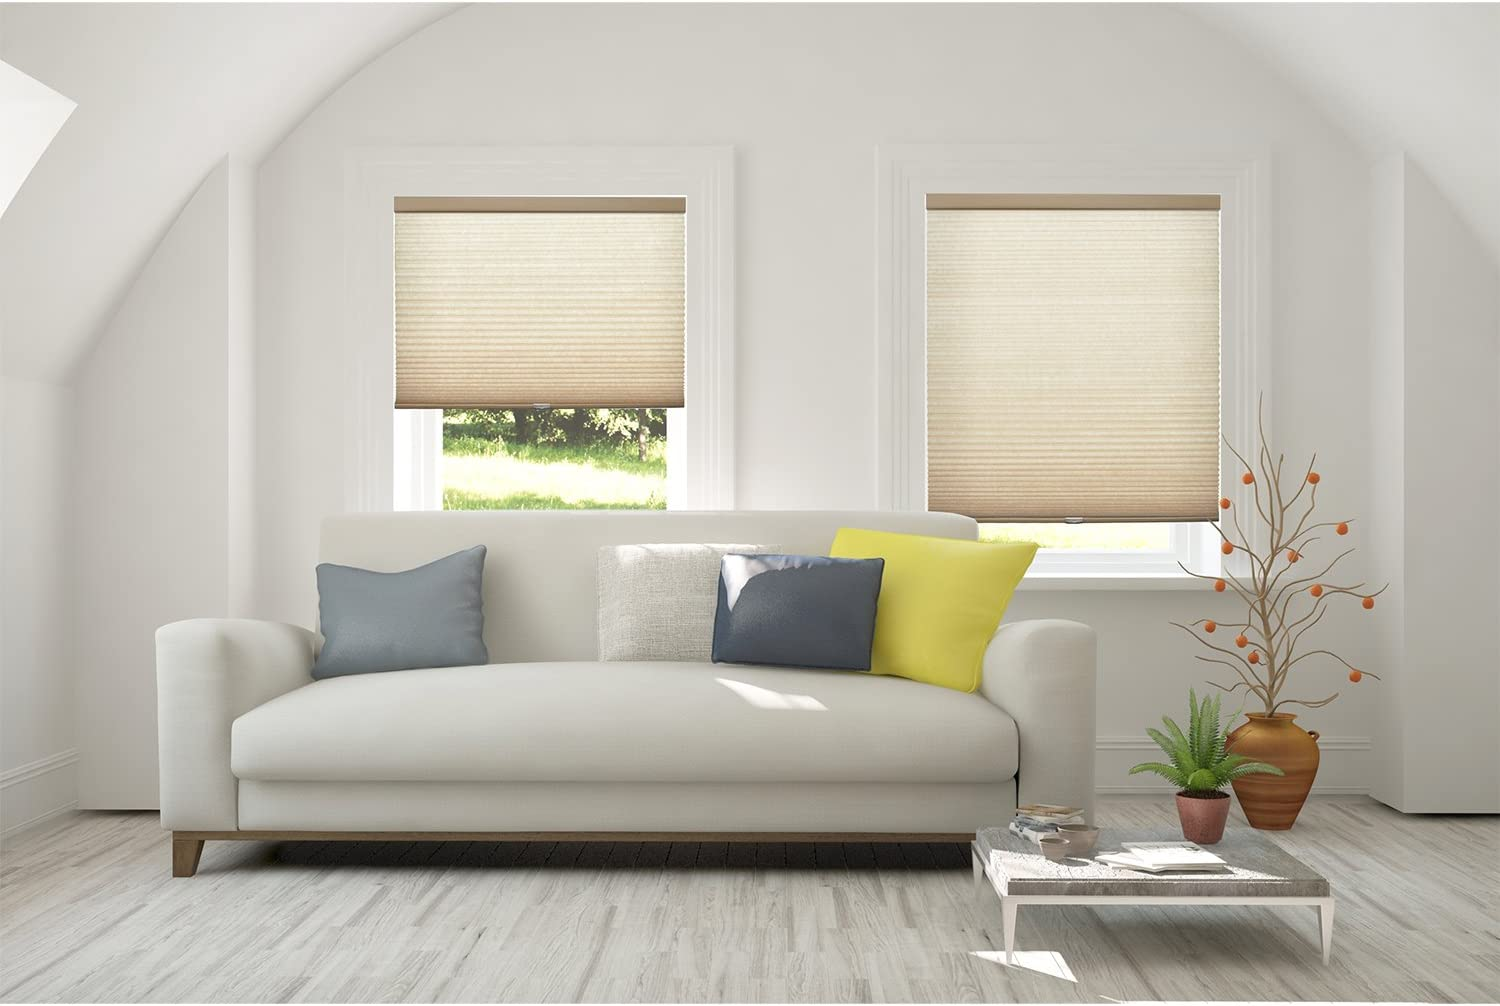 Inside Mount,W:18 xH:48 Croissant Privacy Light Filtering CHICOLOGY Custom Made Cordless Cellular Shades M